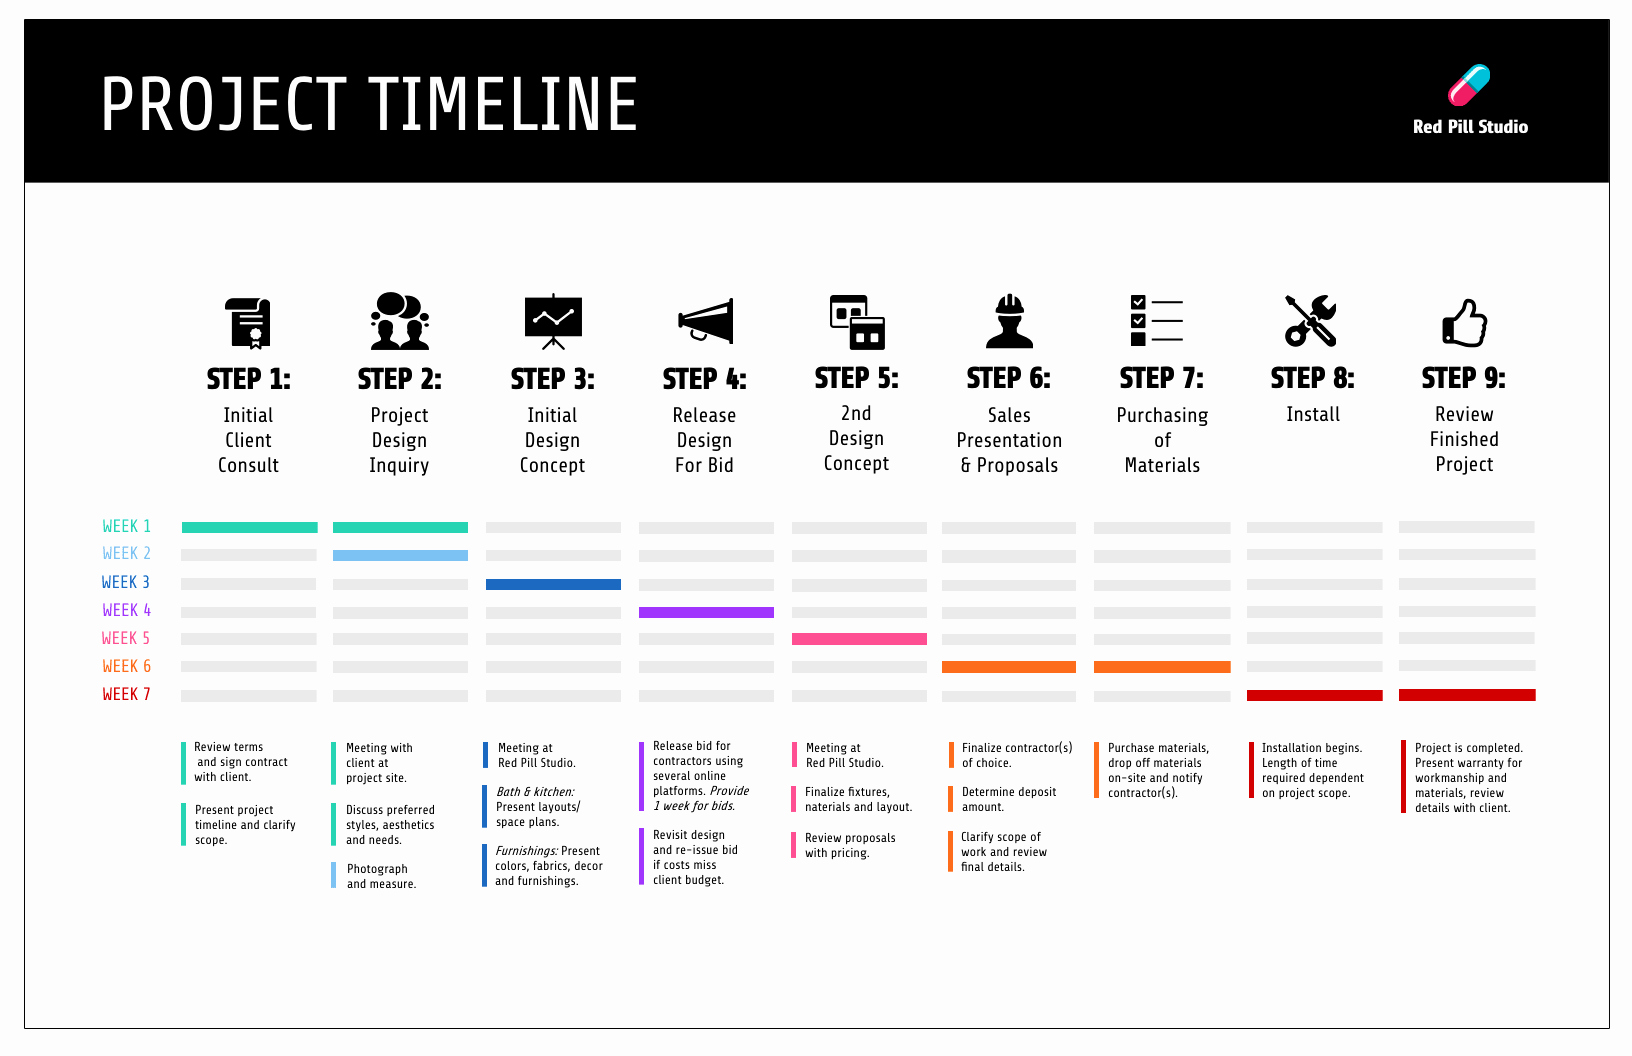 Project Plan Outline Template Elegant 15 Project Plan Templates to Visualize Your Strategy